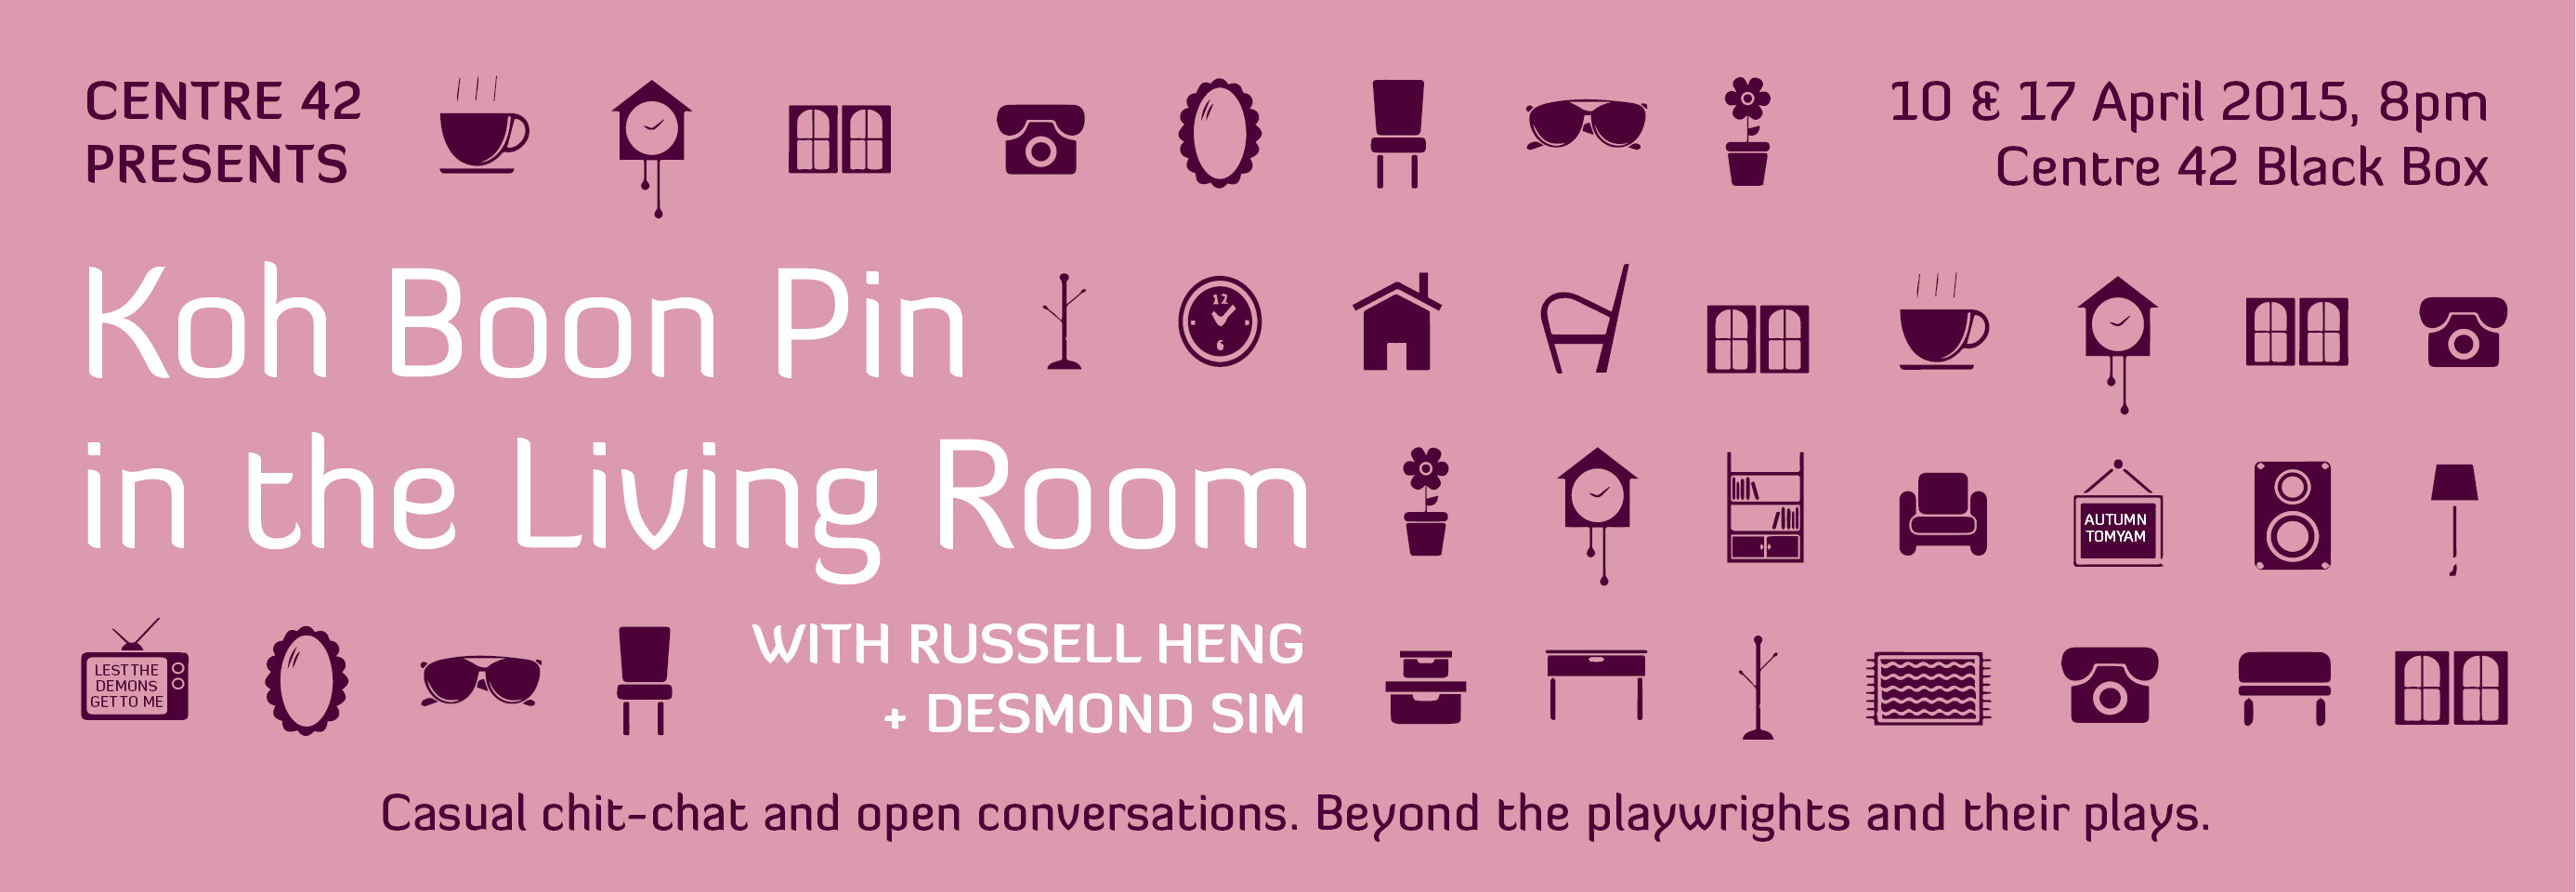 In the Living Room: Koh Boon Pin